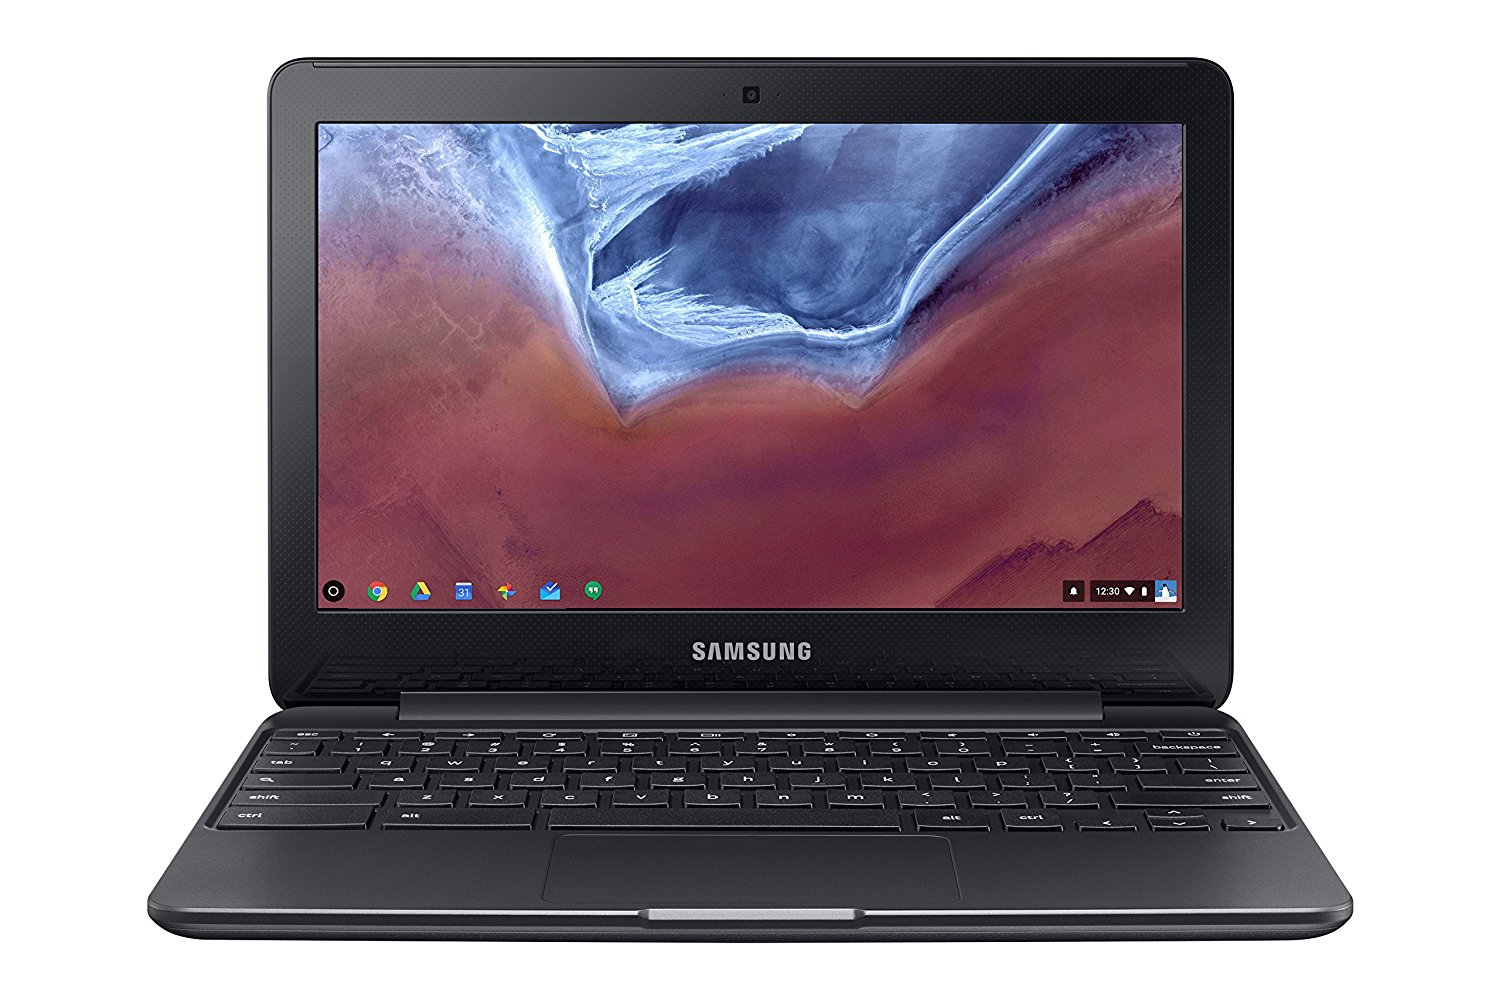 Samsung Chromebook 3 Laptop